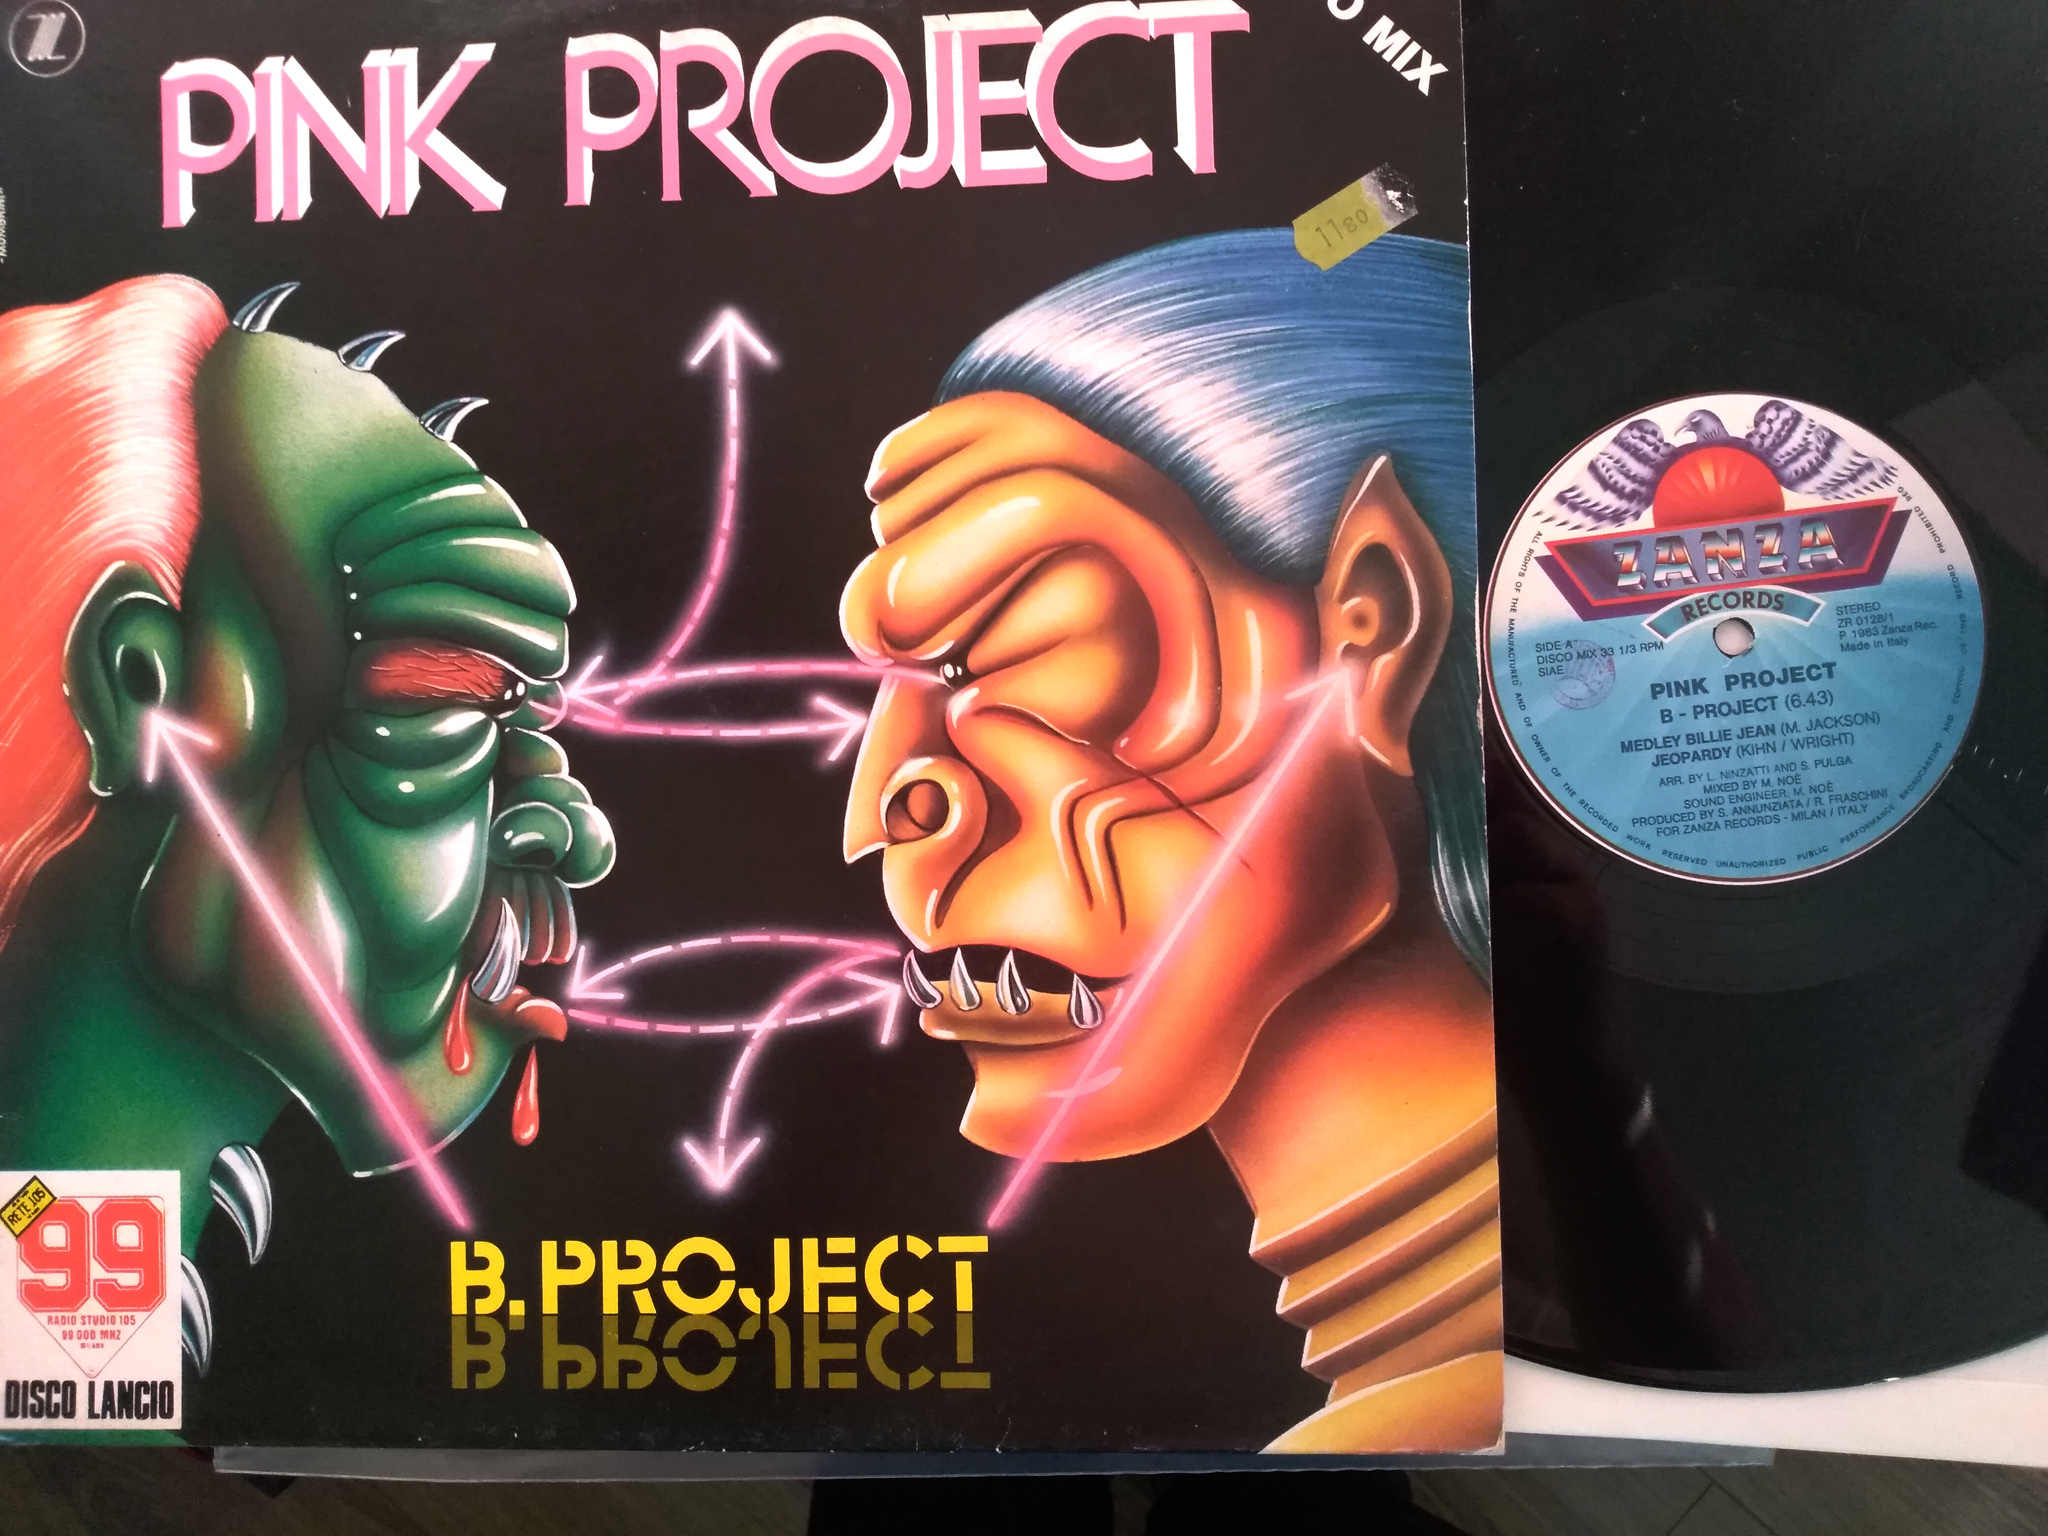 Pink Project - B. Project